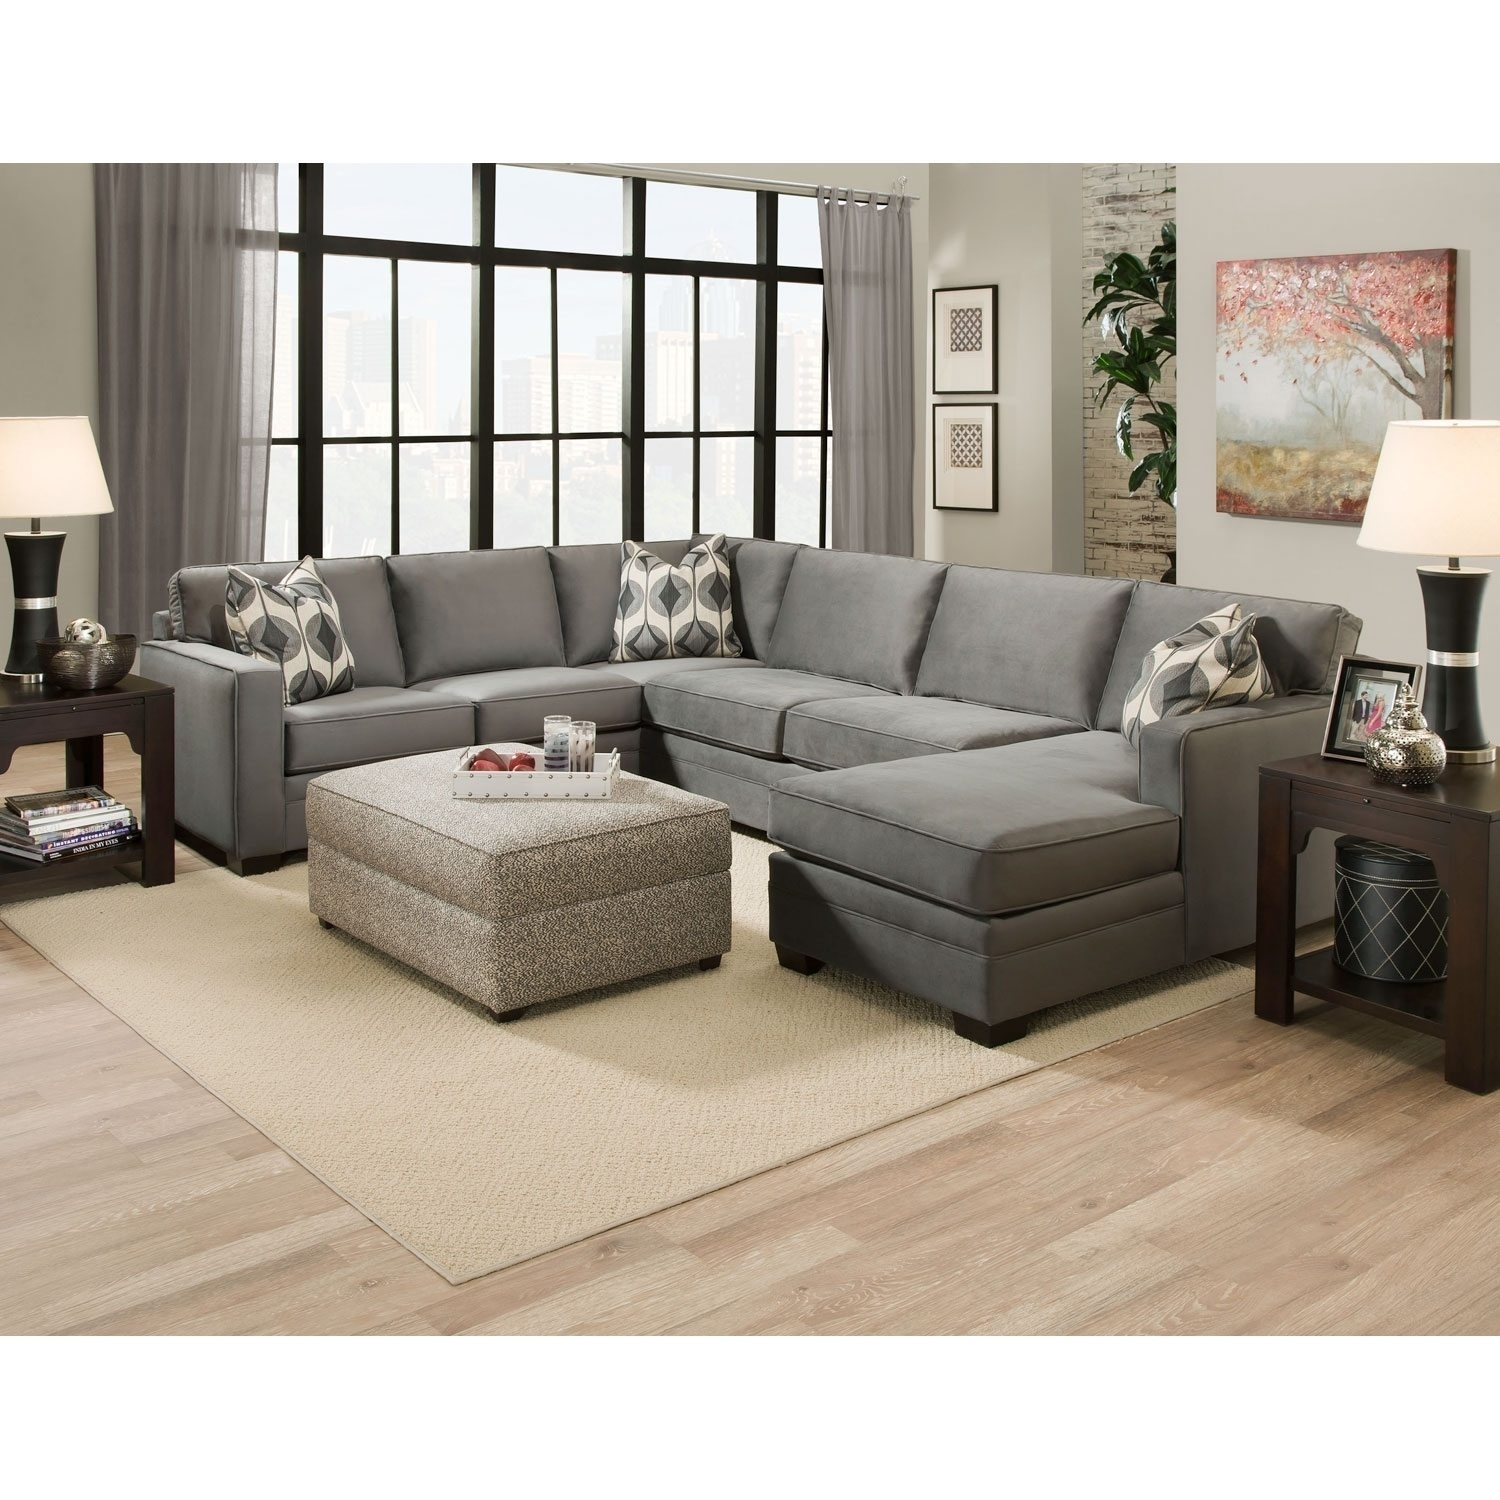 Lane Sectionals Sofas Sam's Club • Sectional Sofa Inside Sams Club Sectional Sofas (View 3 of 10)